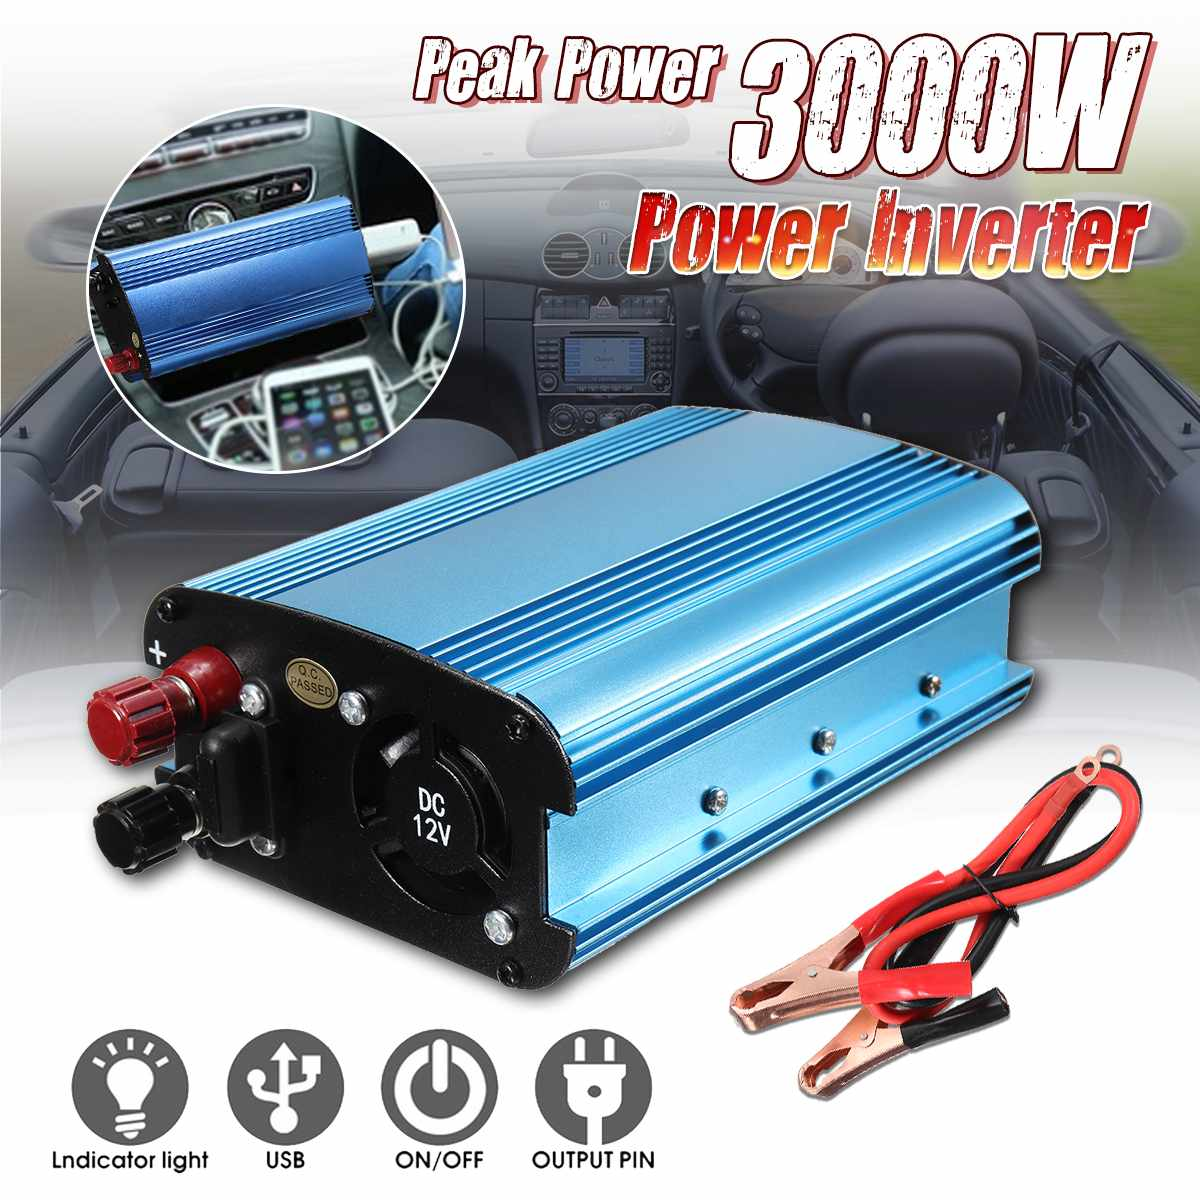 Auto <font><b>Inverter</b></font> 3000W DC 12/<font><b>24</b></font>/48/60V zu AC <font><b>220V</b></font> Solar Power <font><b>Inverter</b></font> konverter Modifizierte Sinus Welle Konverter image